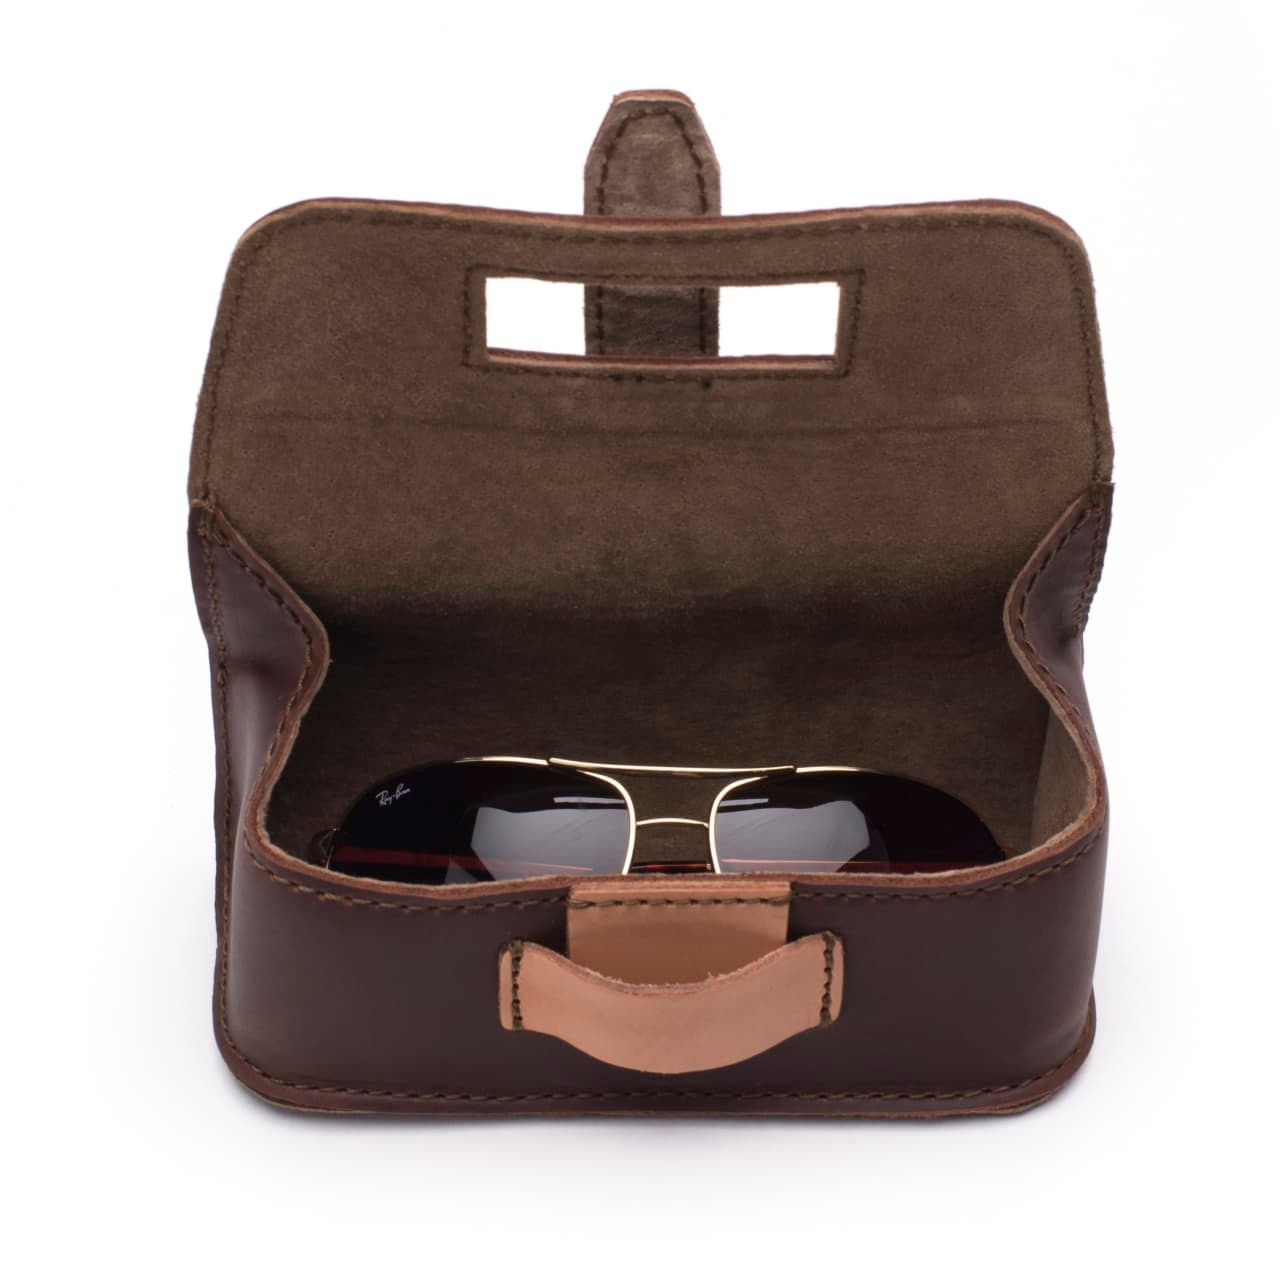 Hard Sunglass Case - Chestnut